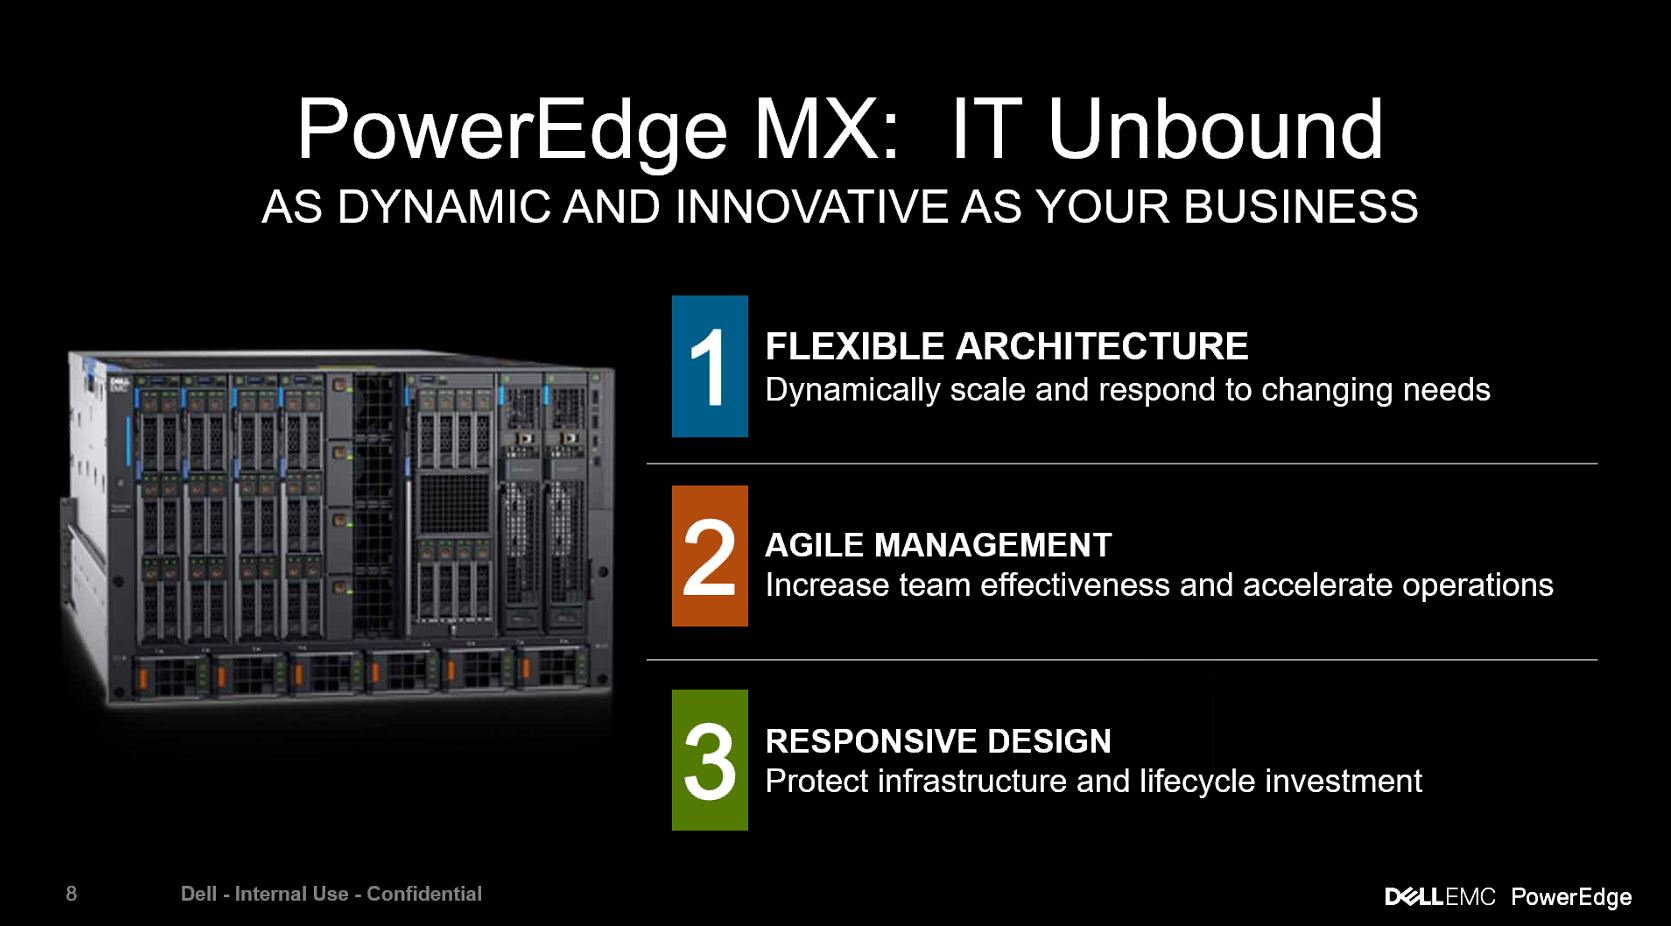 Dell EMC PowerEdge MX Design Points